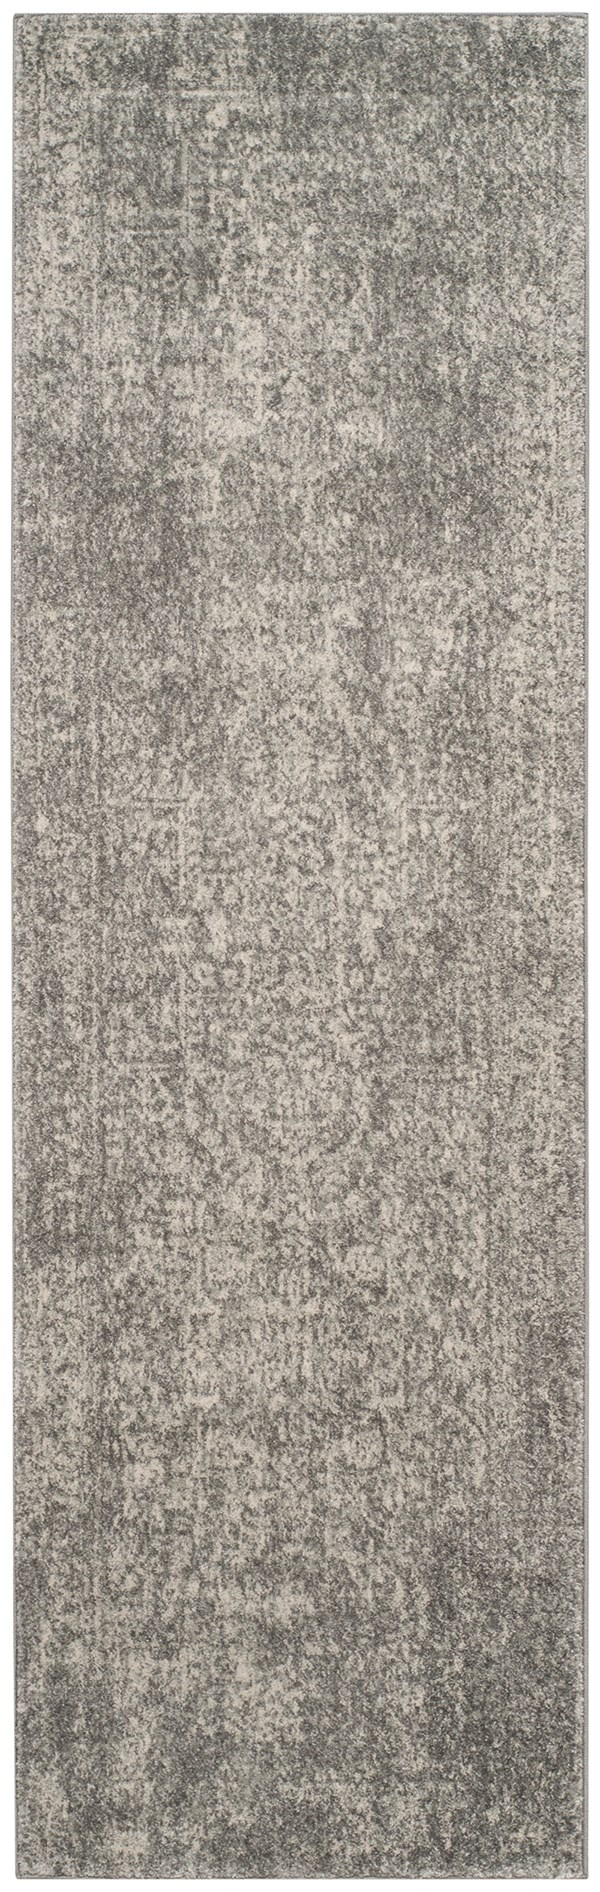 Silver, Ivory (S) Rustic / Farmhouse Area Rug